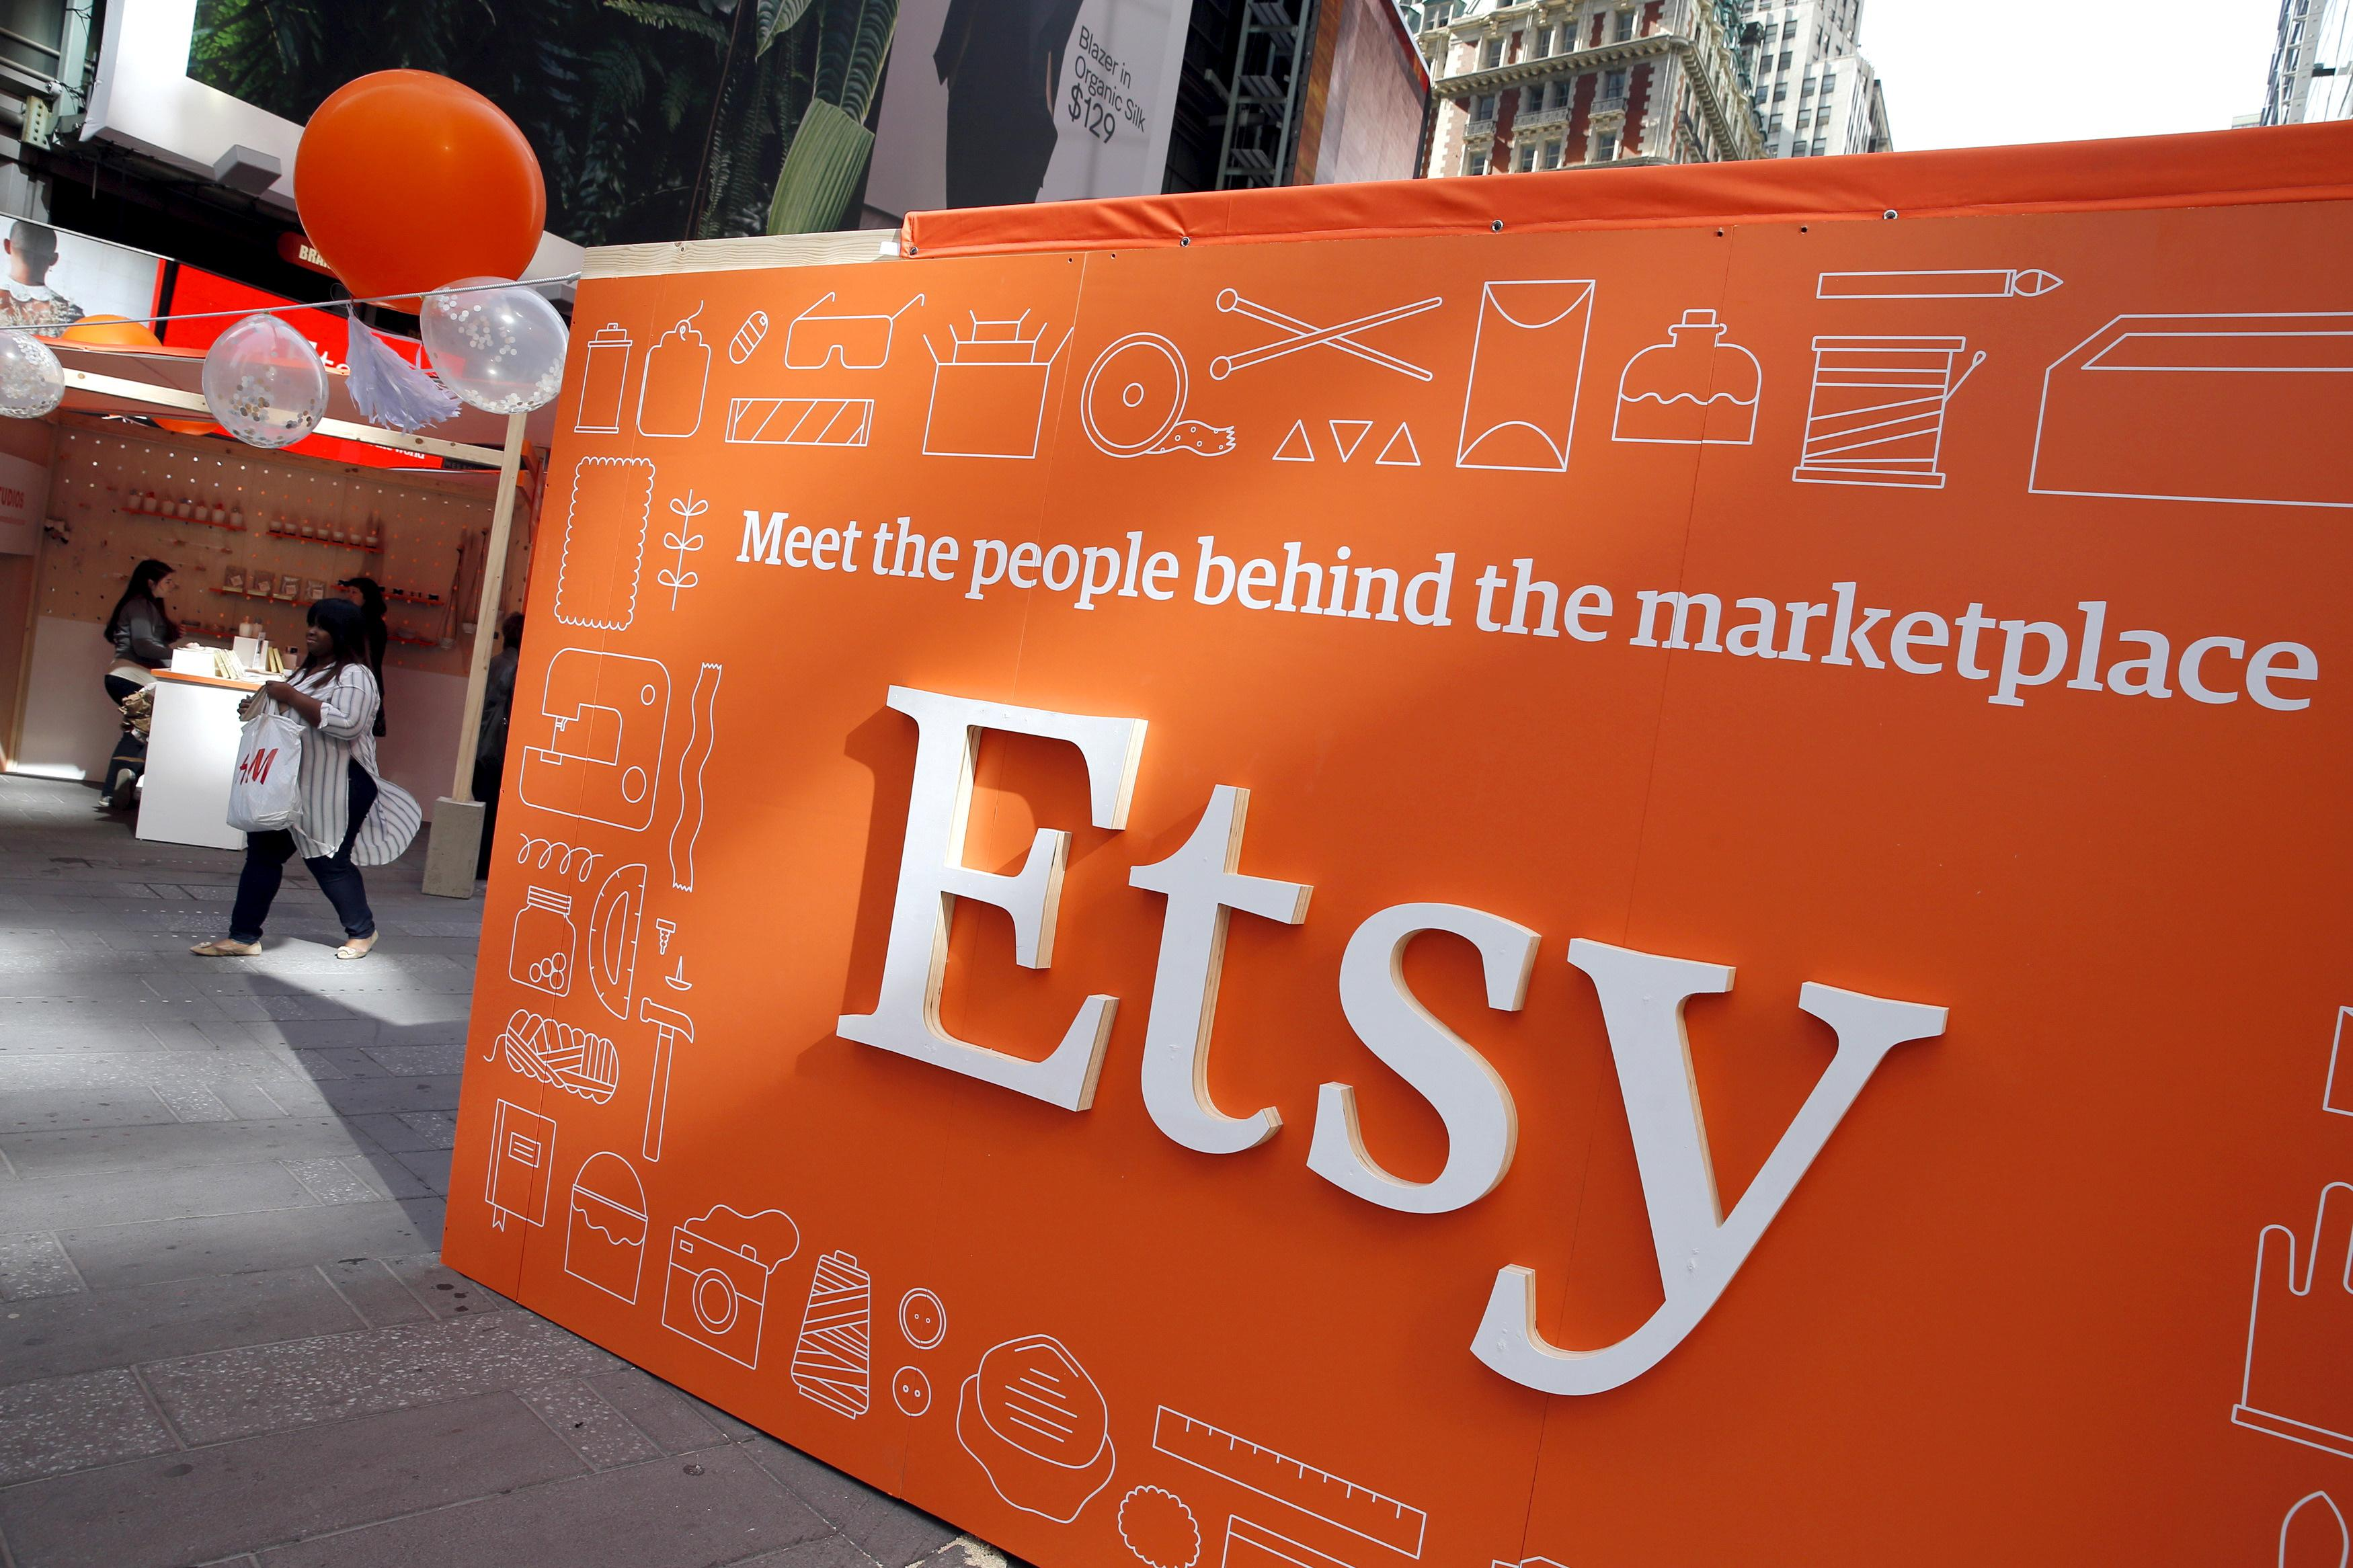 Etsy CEO on huge Q2: Etsy is 'becoming much more mainstream'